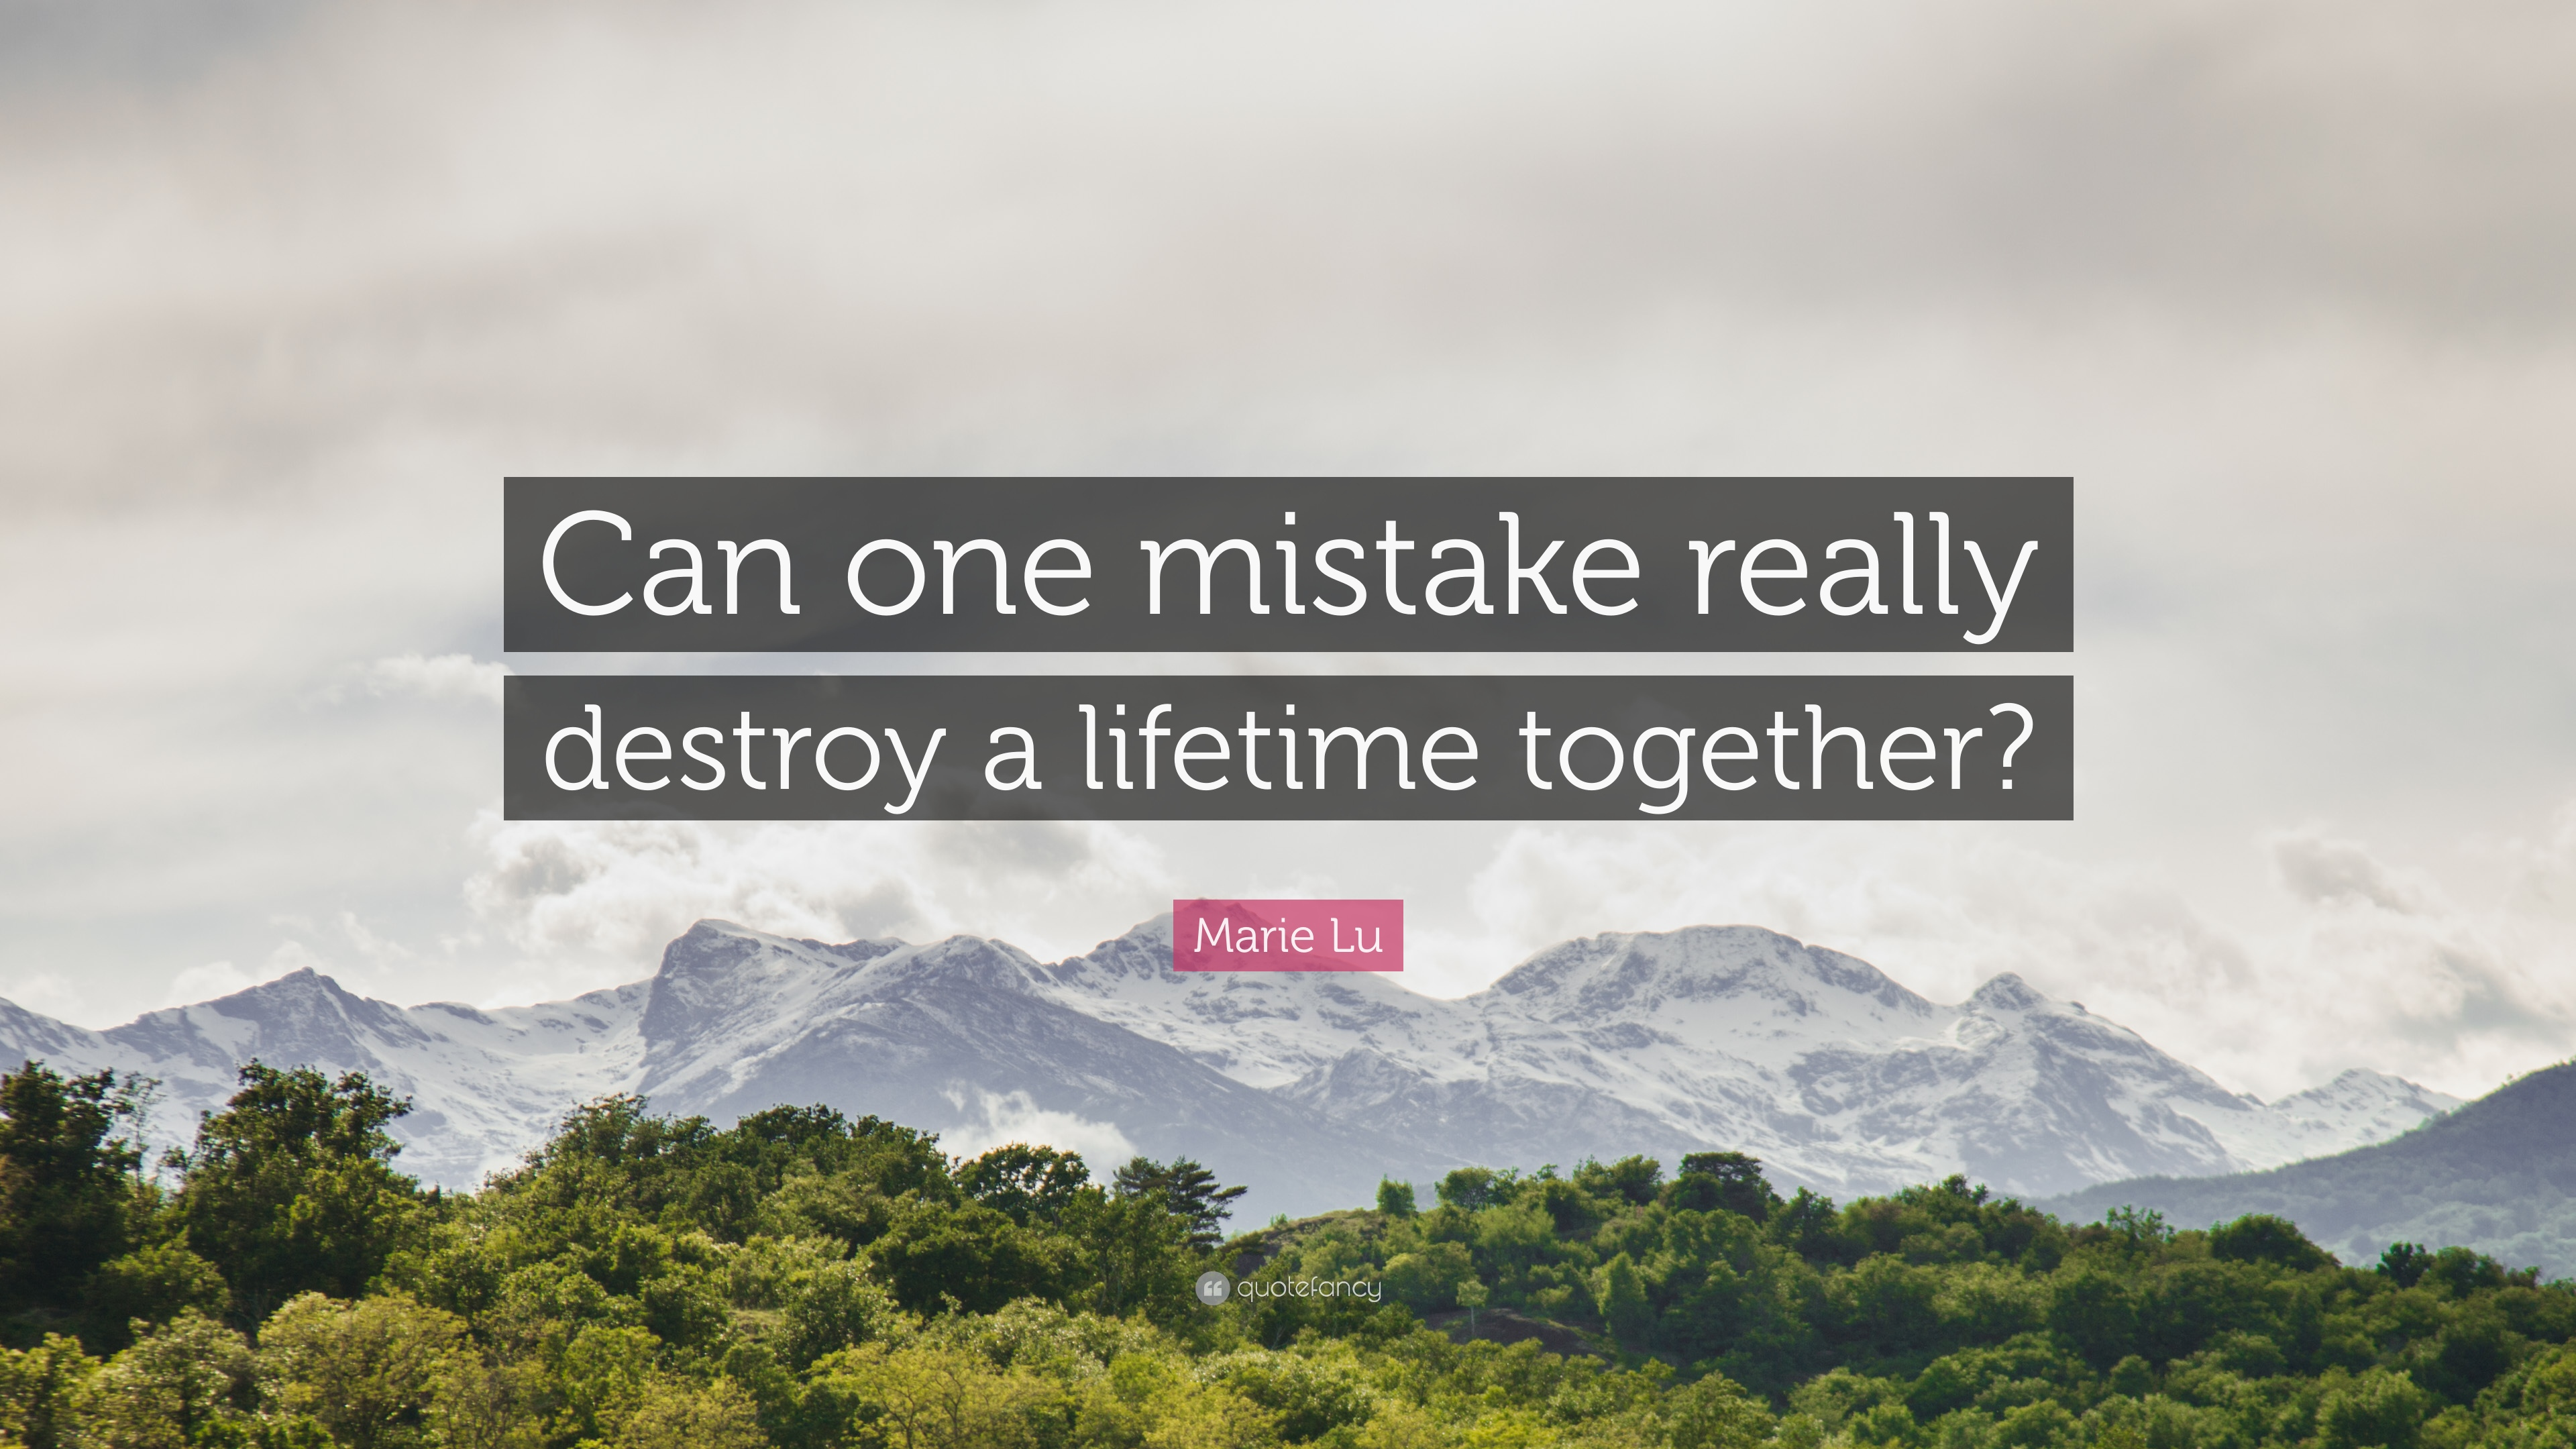 Marie Lu Quote: U201cCan One Mistake Really Destroy A Lifetime Together?u201d